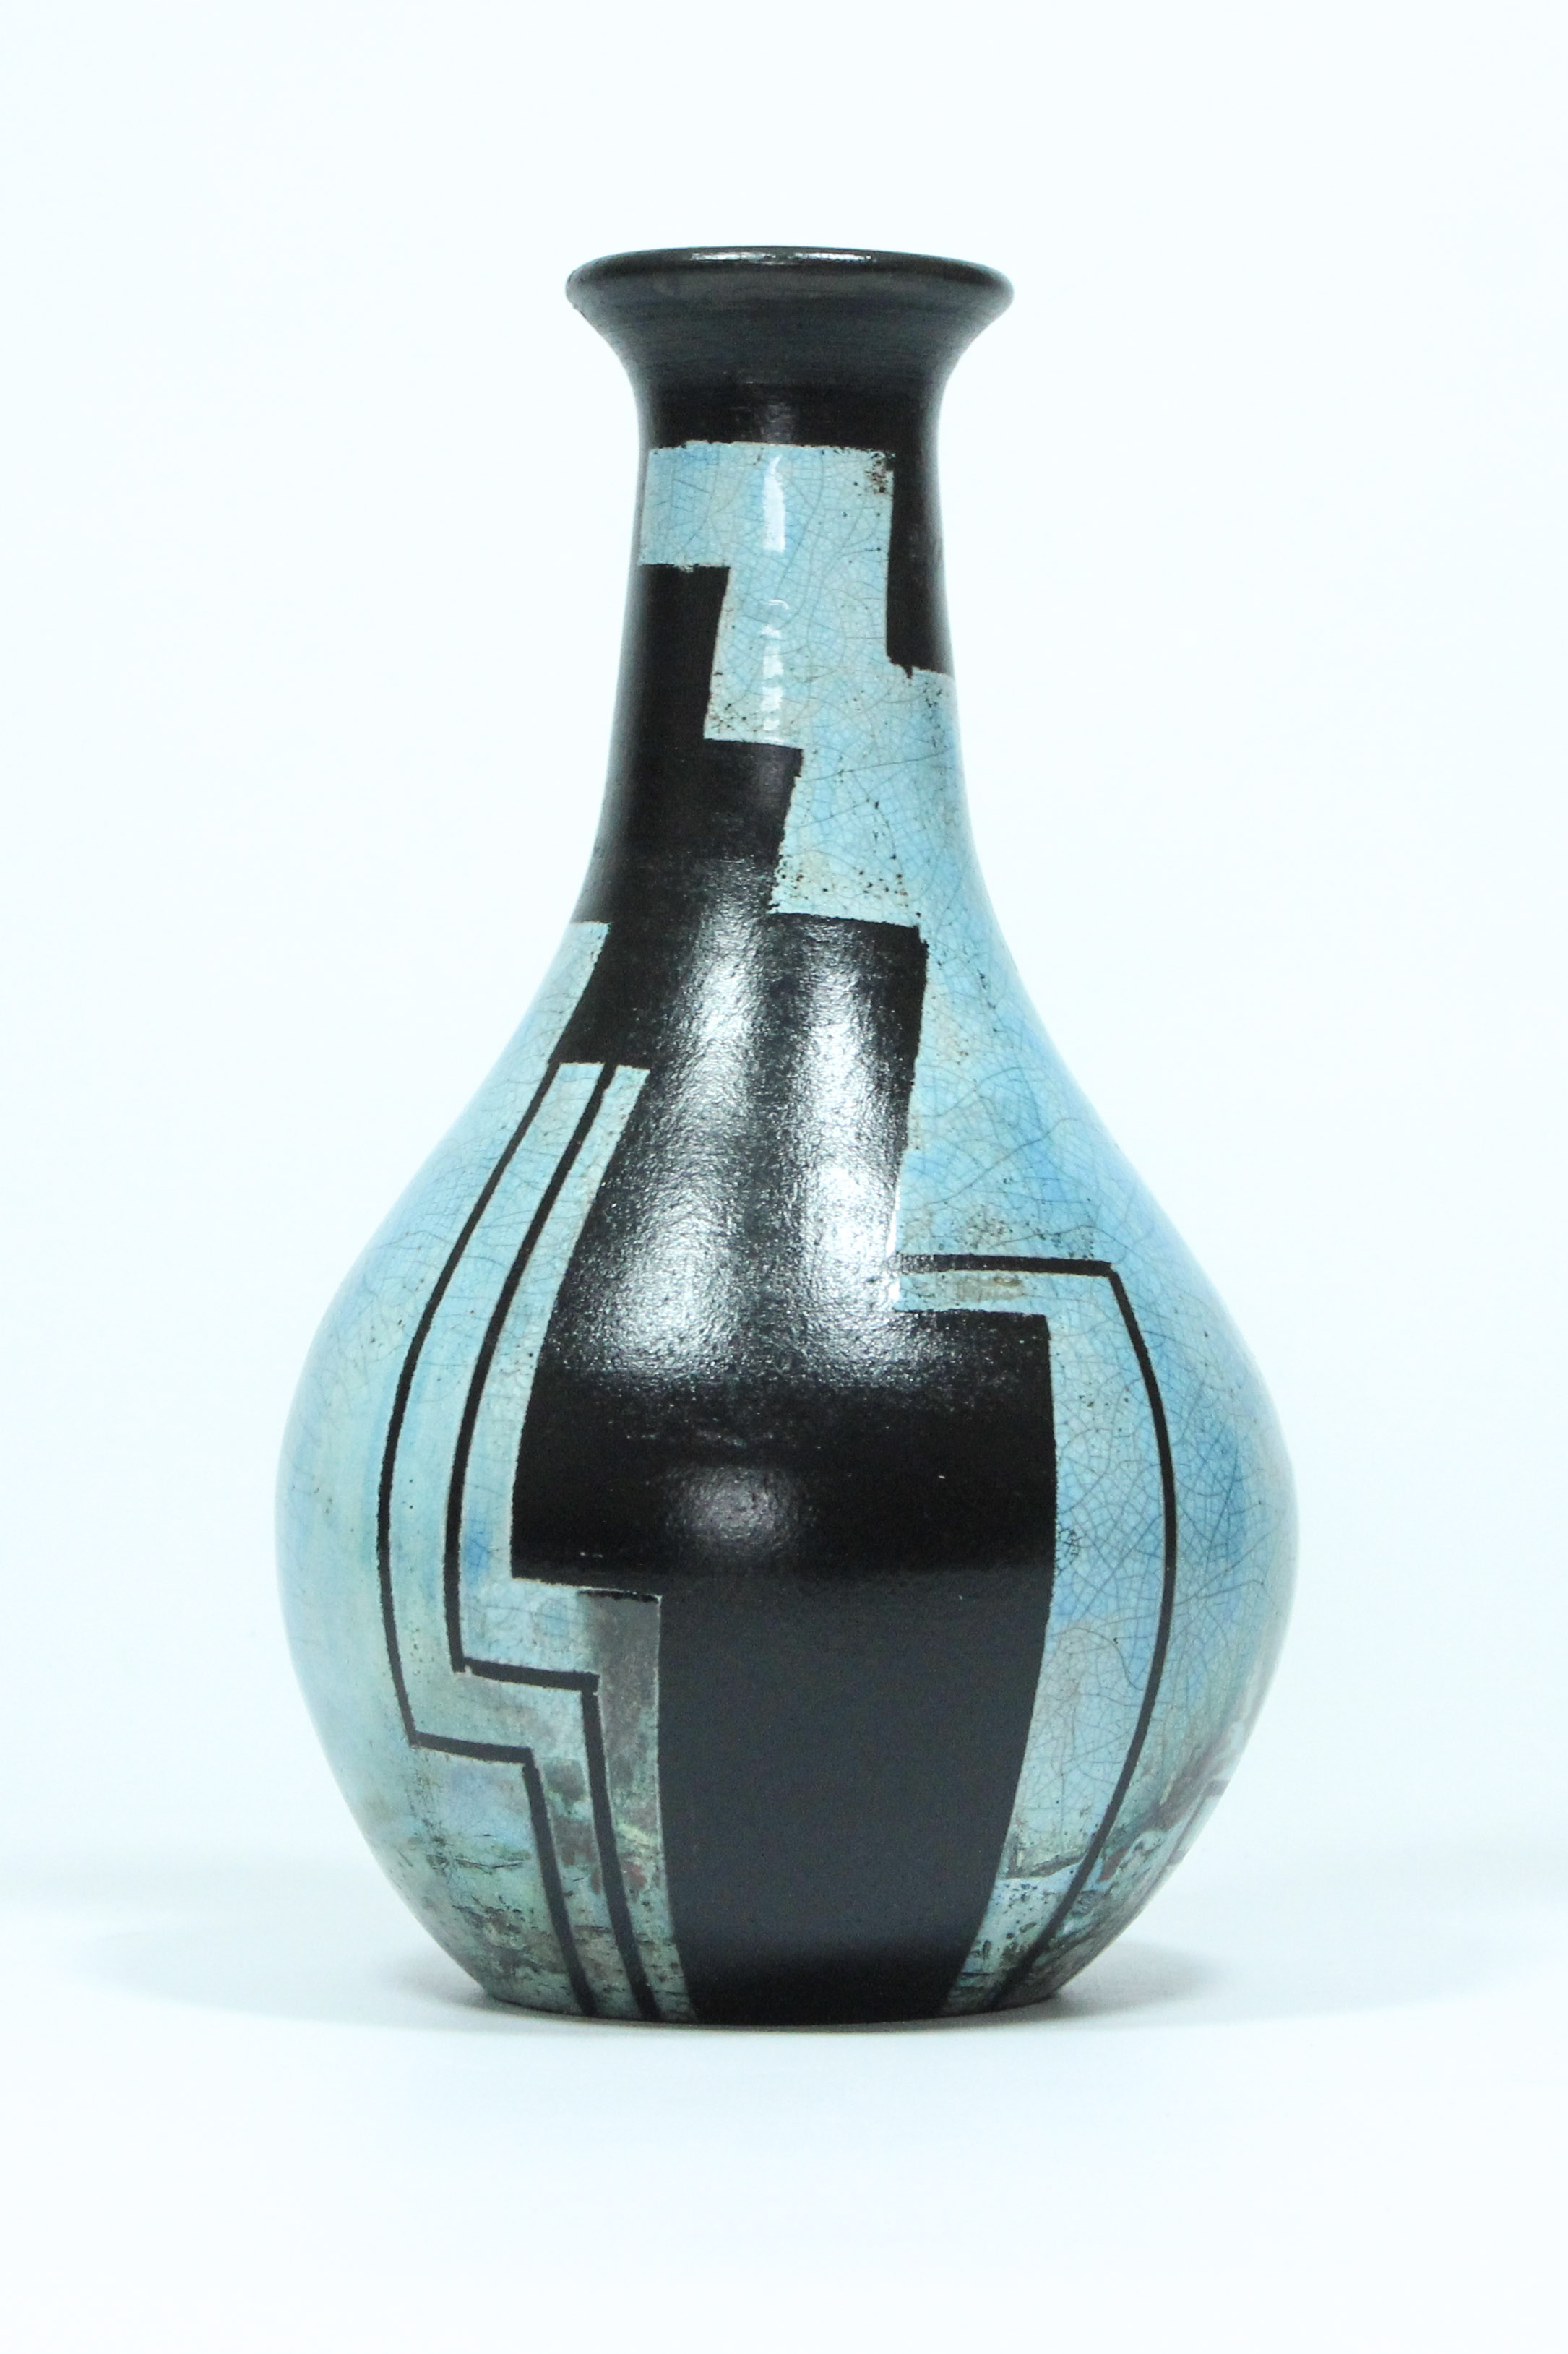 Peter White Large Raku 3 Woburn Sands Clay The Great Pottery Throw Down